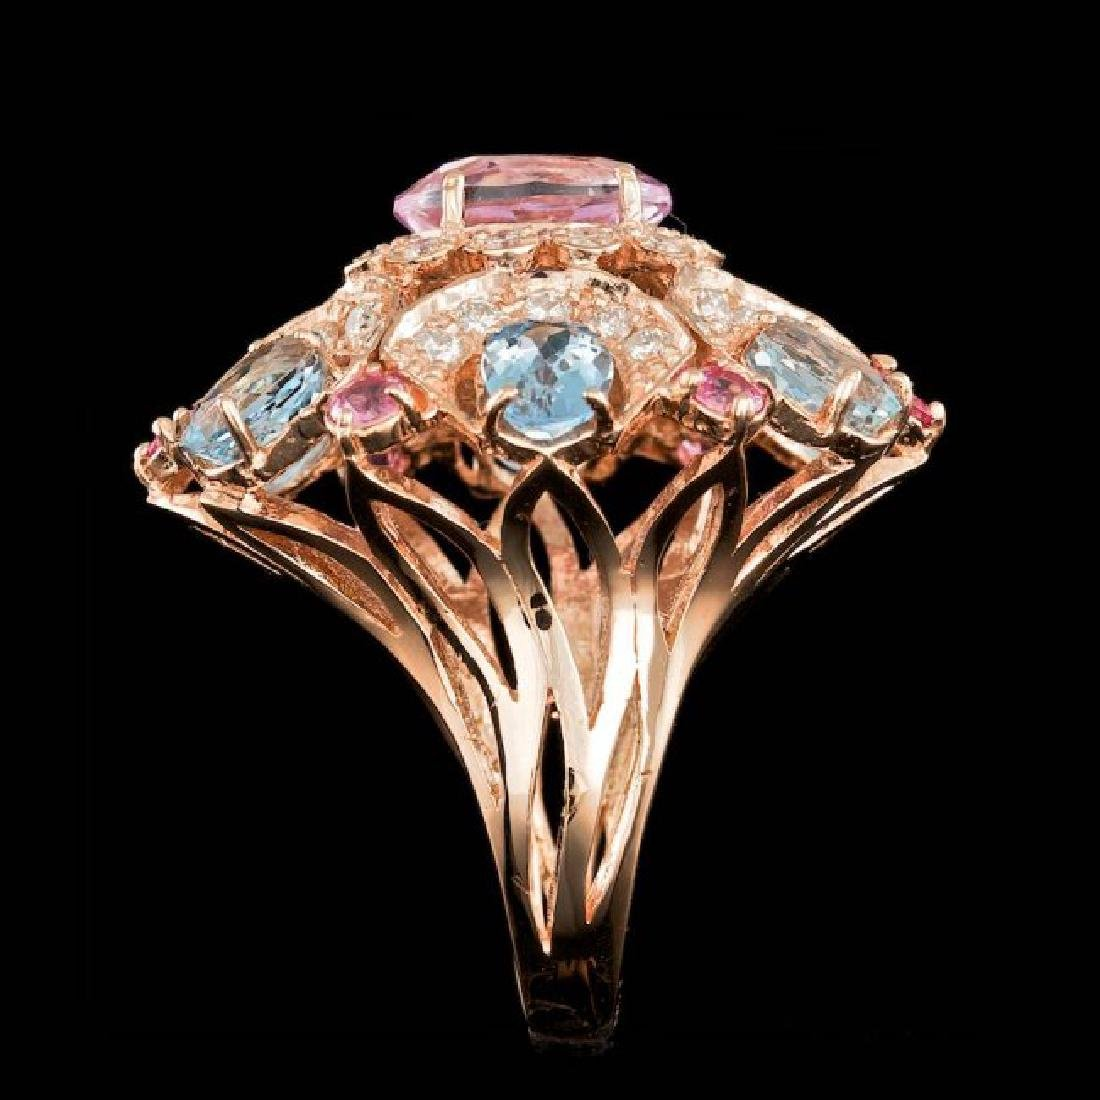 14k Rose Gold 3.50ct Kunzite 1.25ct Diamond Ring - 3